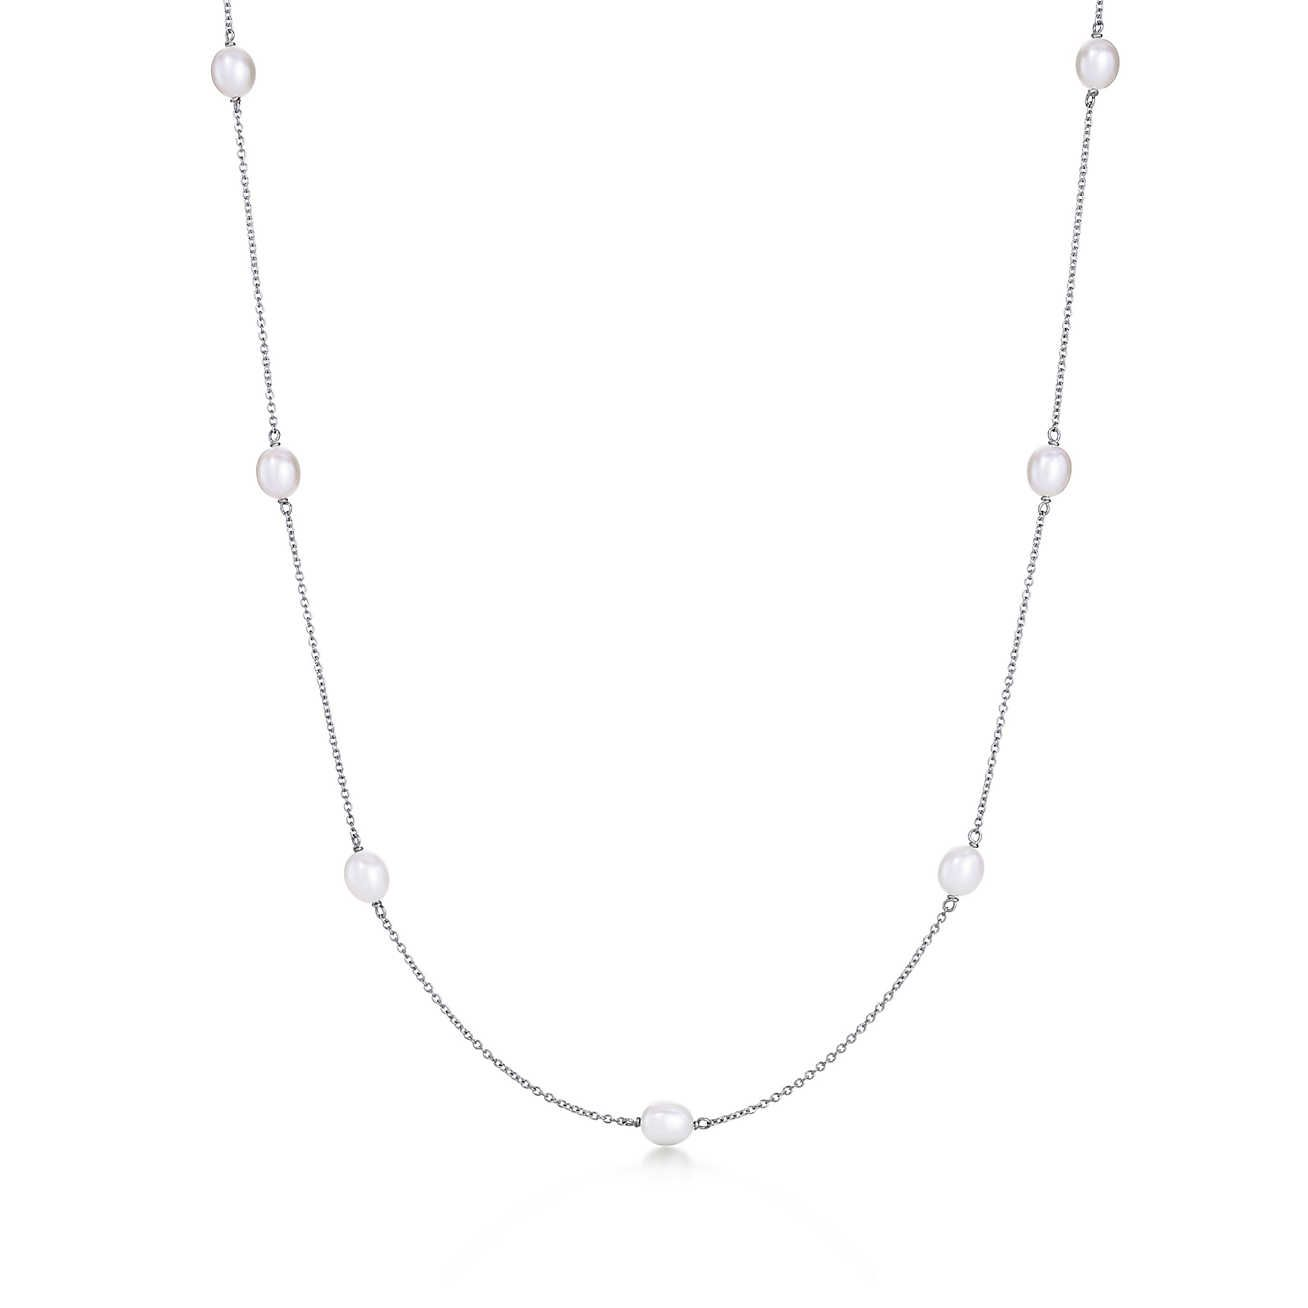 Elsa Peretti Pearls by the Yard sprinkle necklace of cultured pearls in silver - Size Tiffany & Co. ijaGlea4